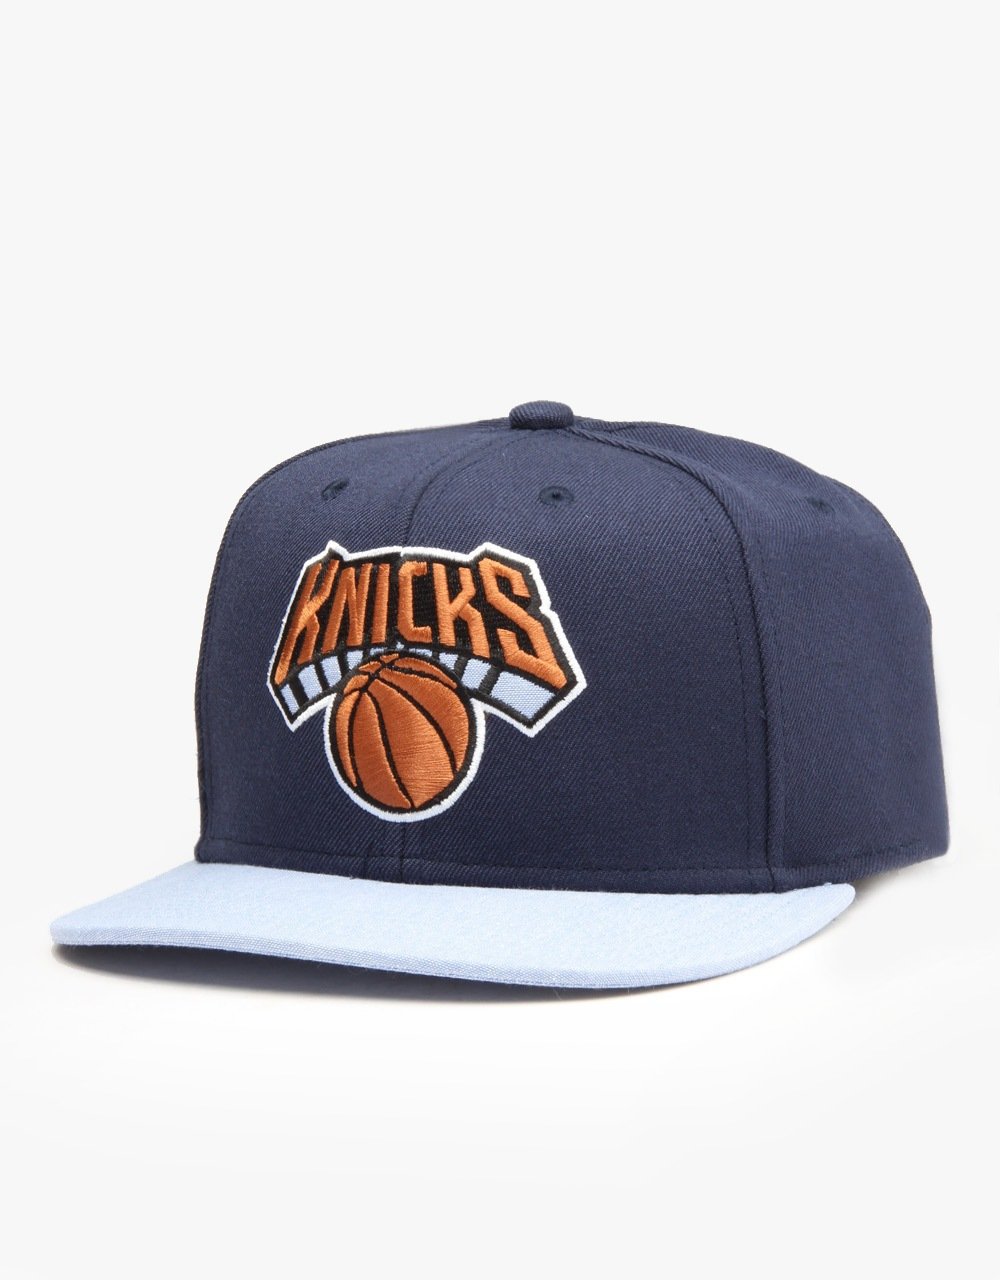 48cf5077fae Mitchell   Ness NBA NY Knicks Command Snapback Cap - Navy Blue ...